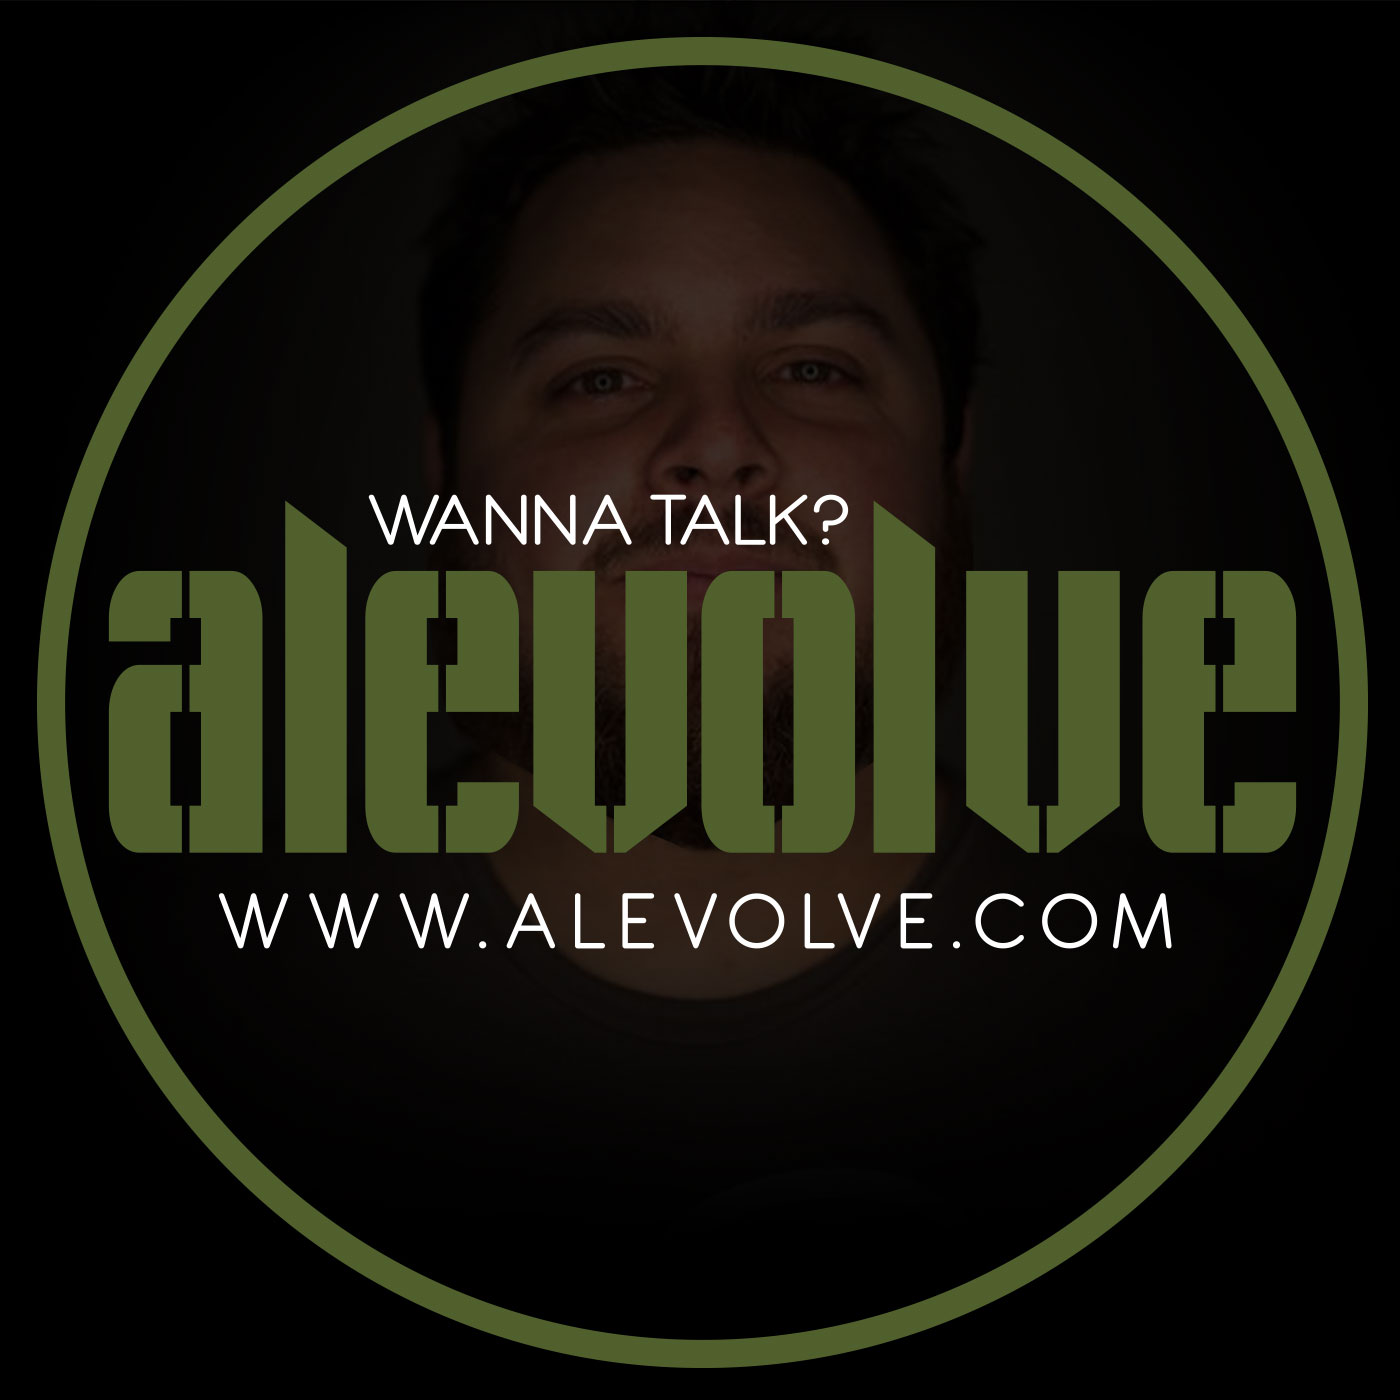 ALEVOLVE RADIO | Sales Series Episode #1 - What's a salesperson? Why?